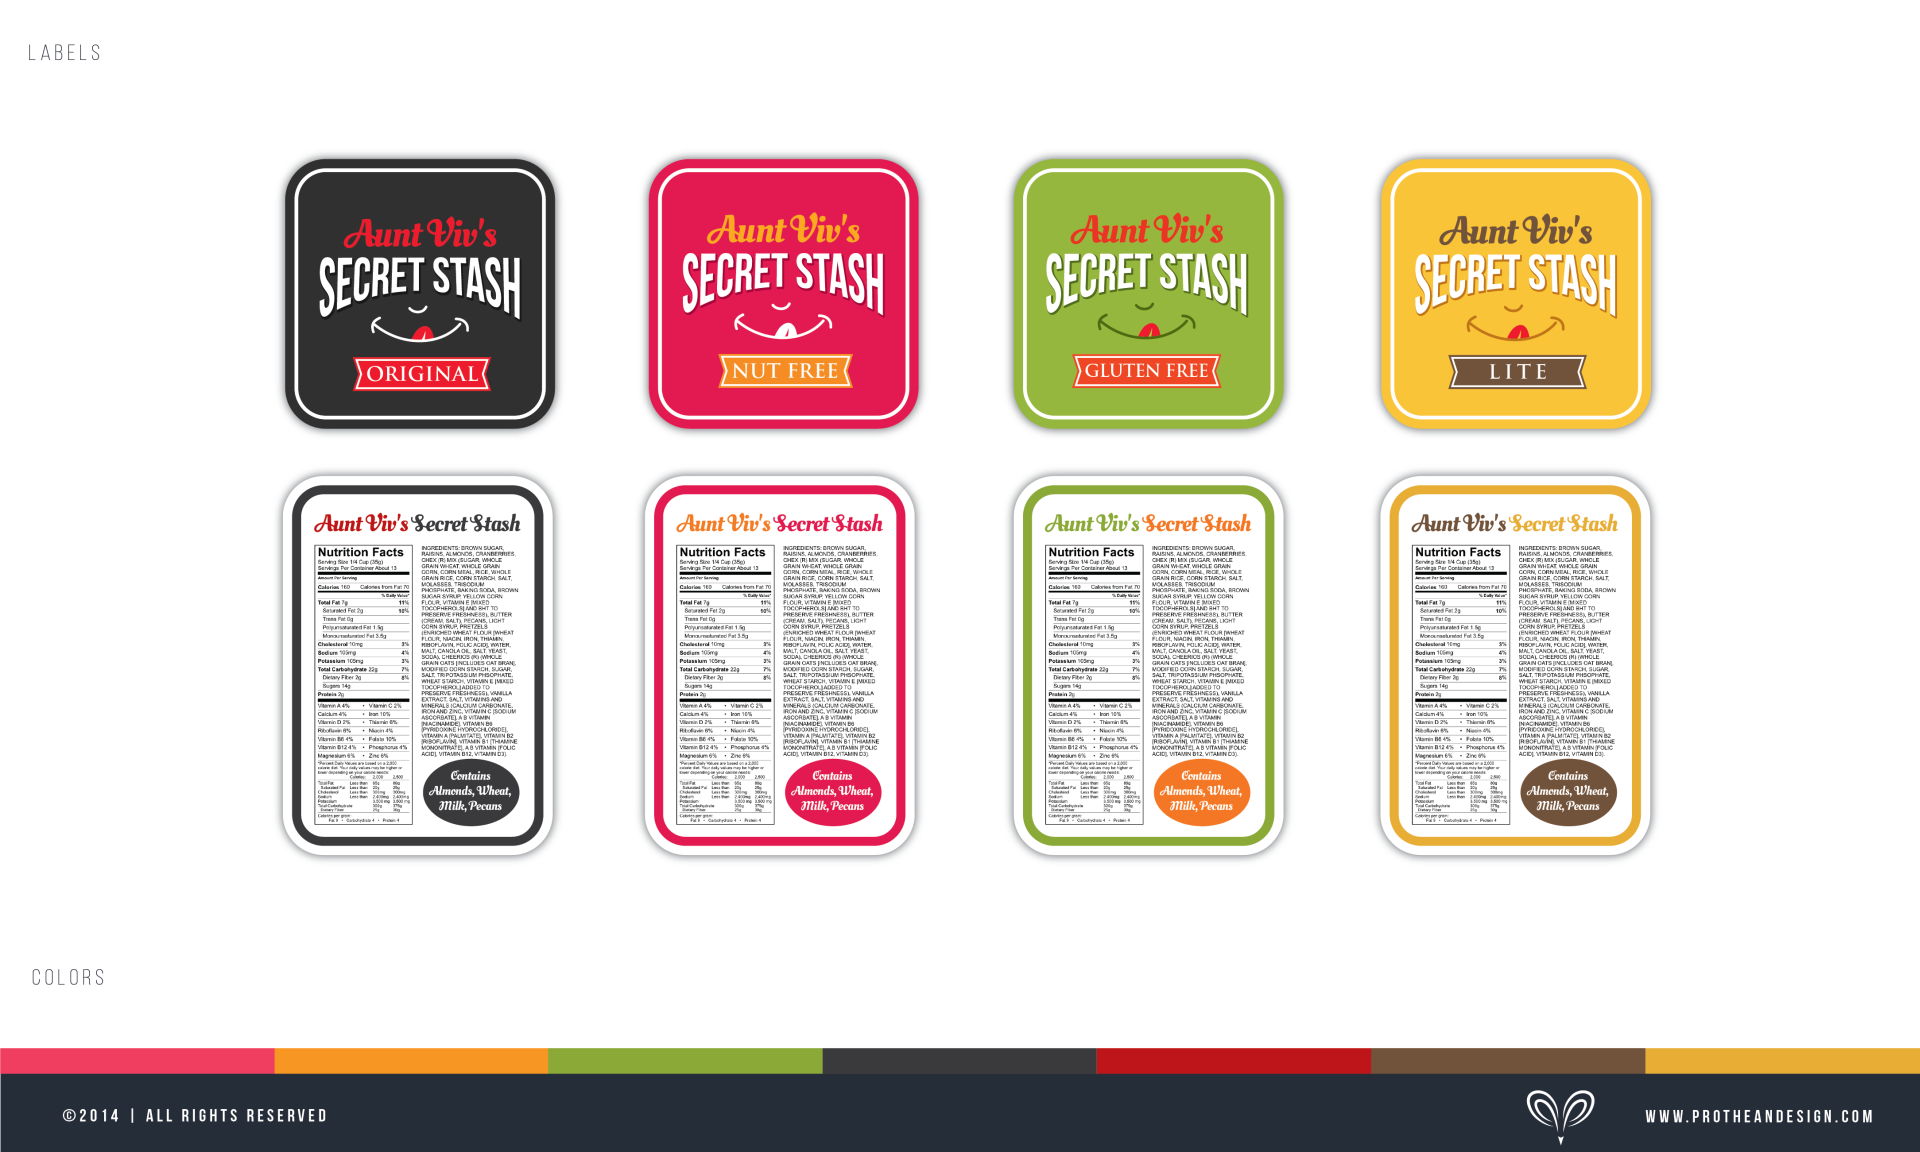 Create an eye catching logo/label/package for Aunt Viv's Secret Stash (snack mix)